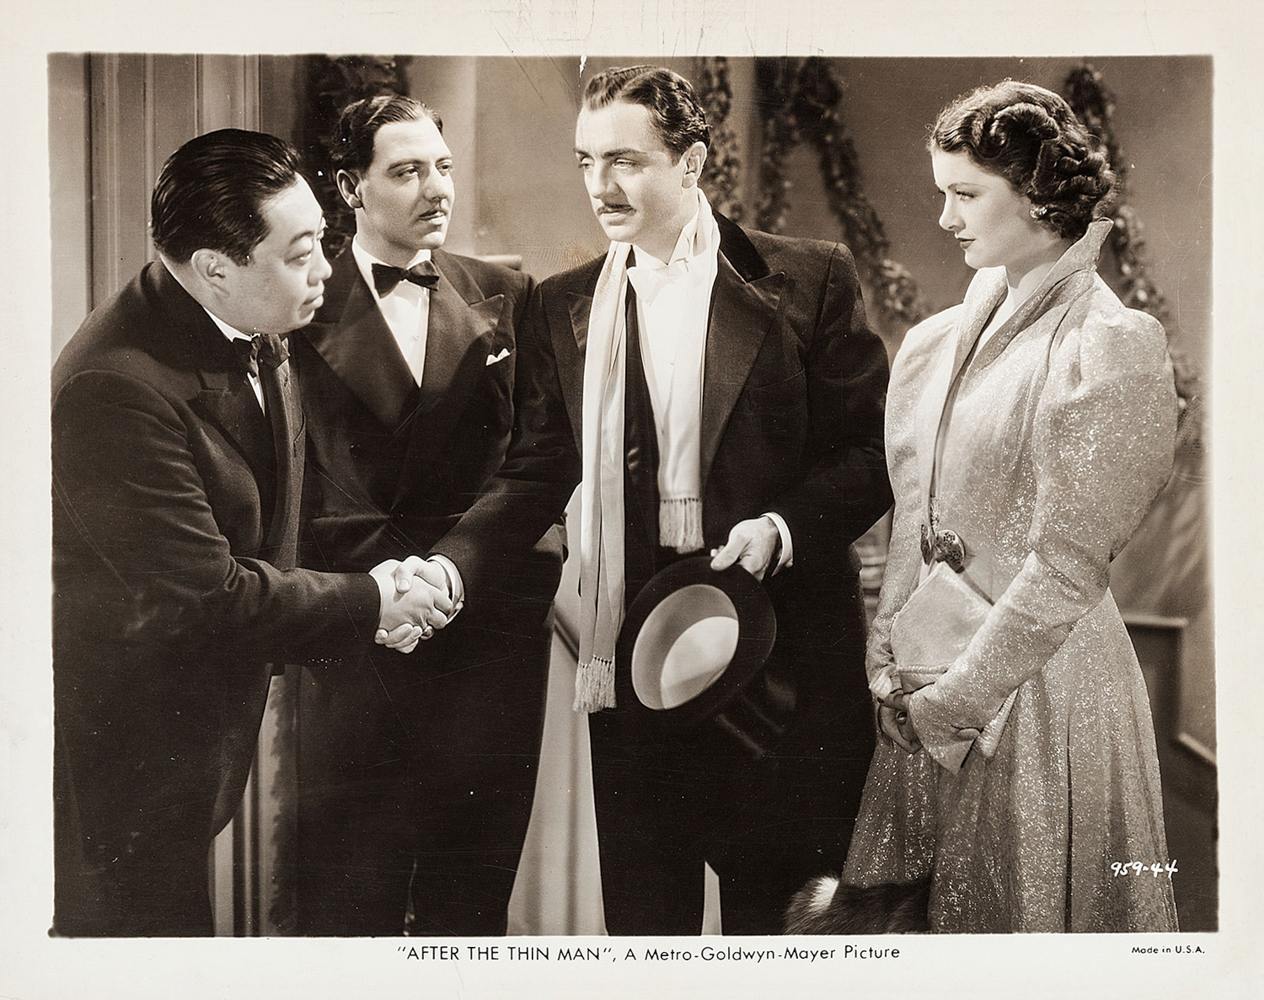 after the thin man 1936 scene still photo 959-44